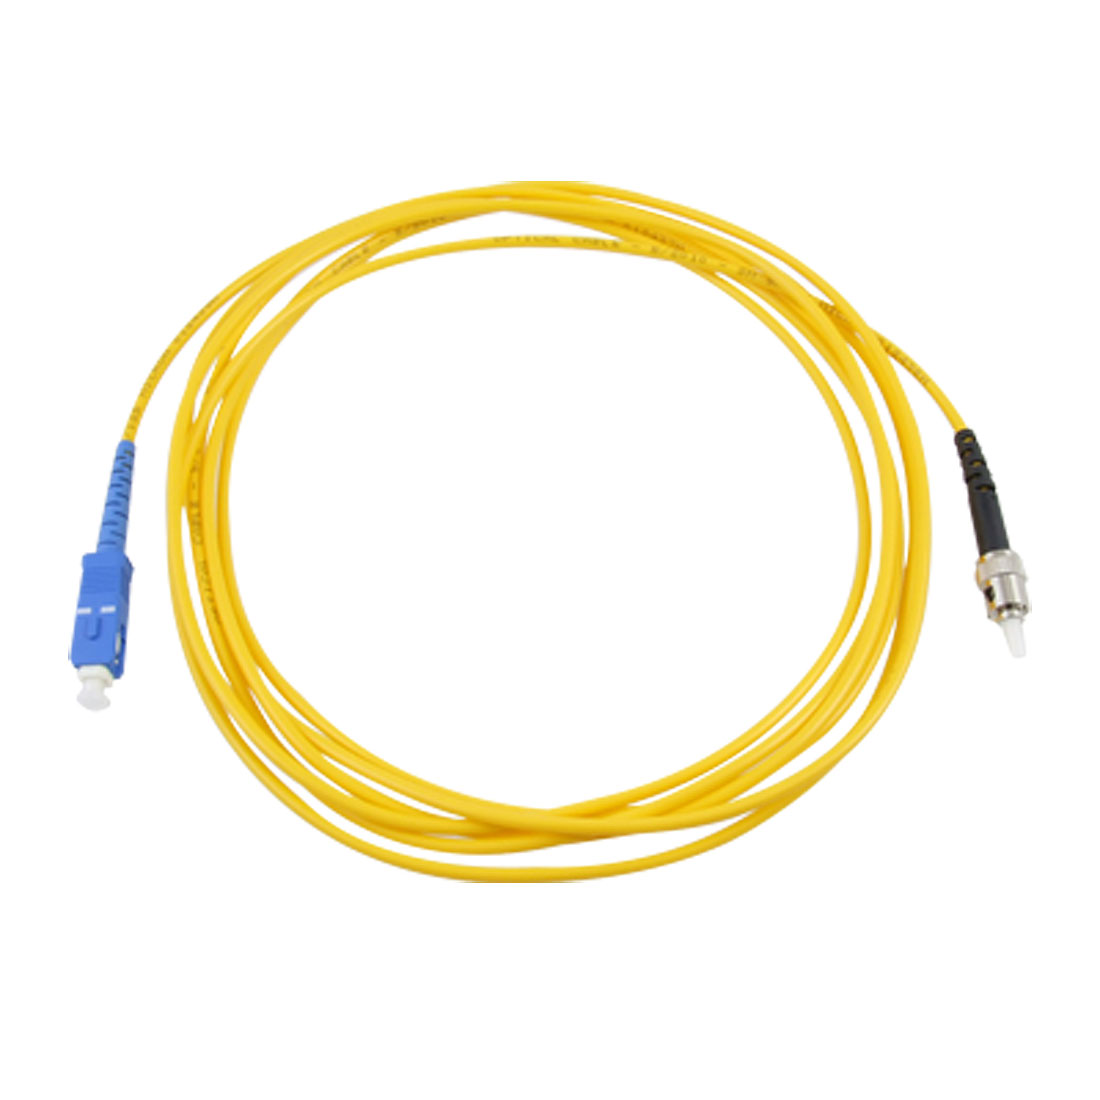 10ft 3 Meters 9/125 SC to ST Simplex Single Mode Fiber Optic Cable